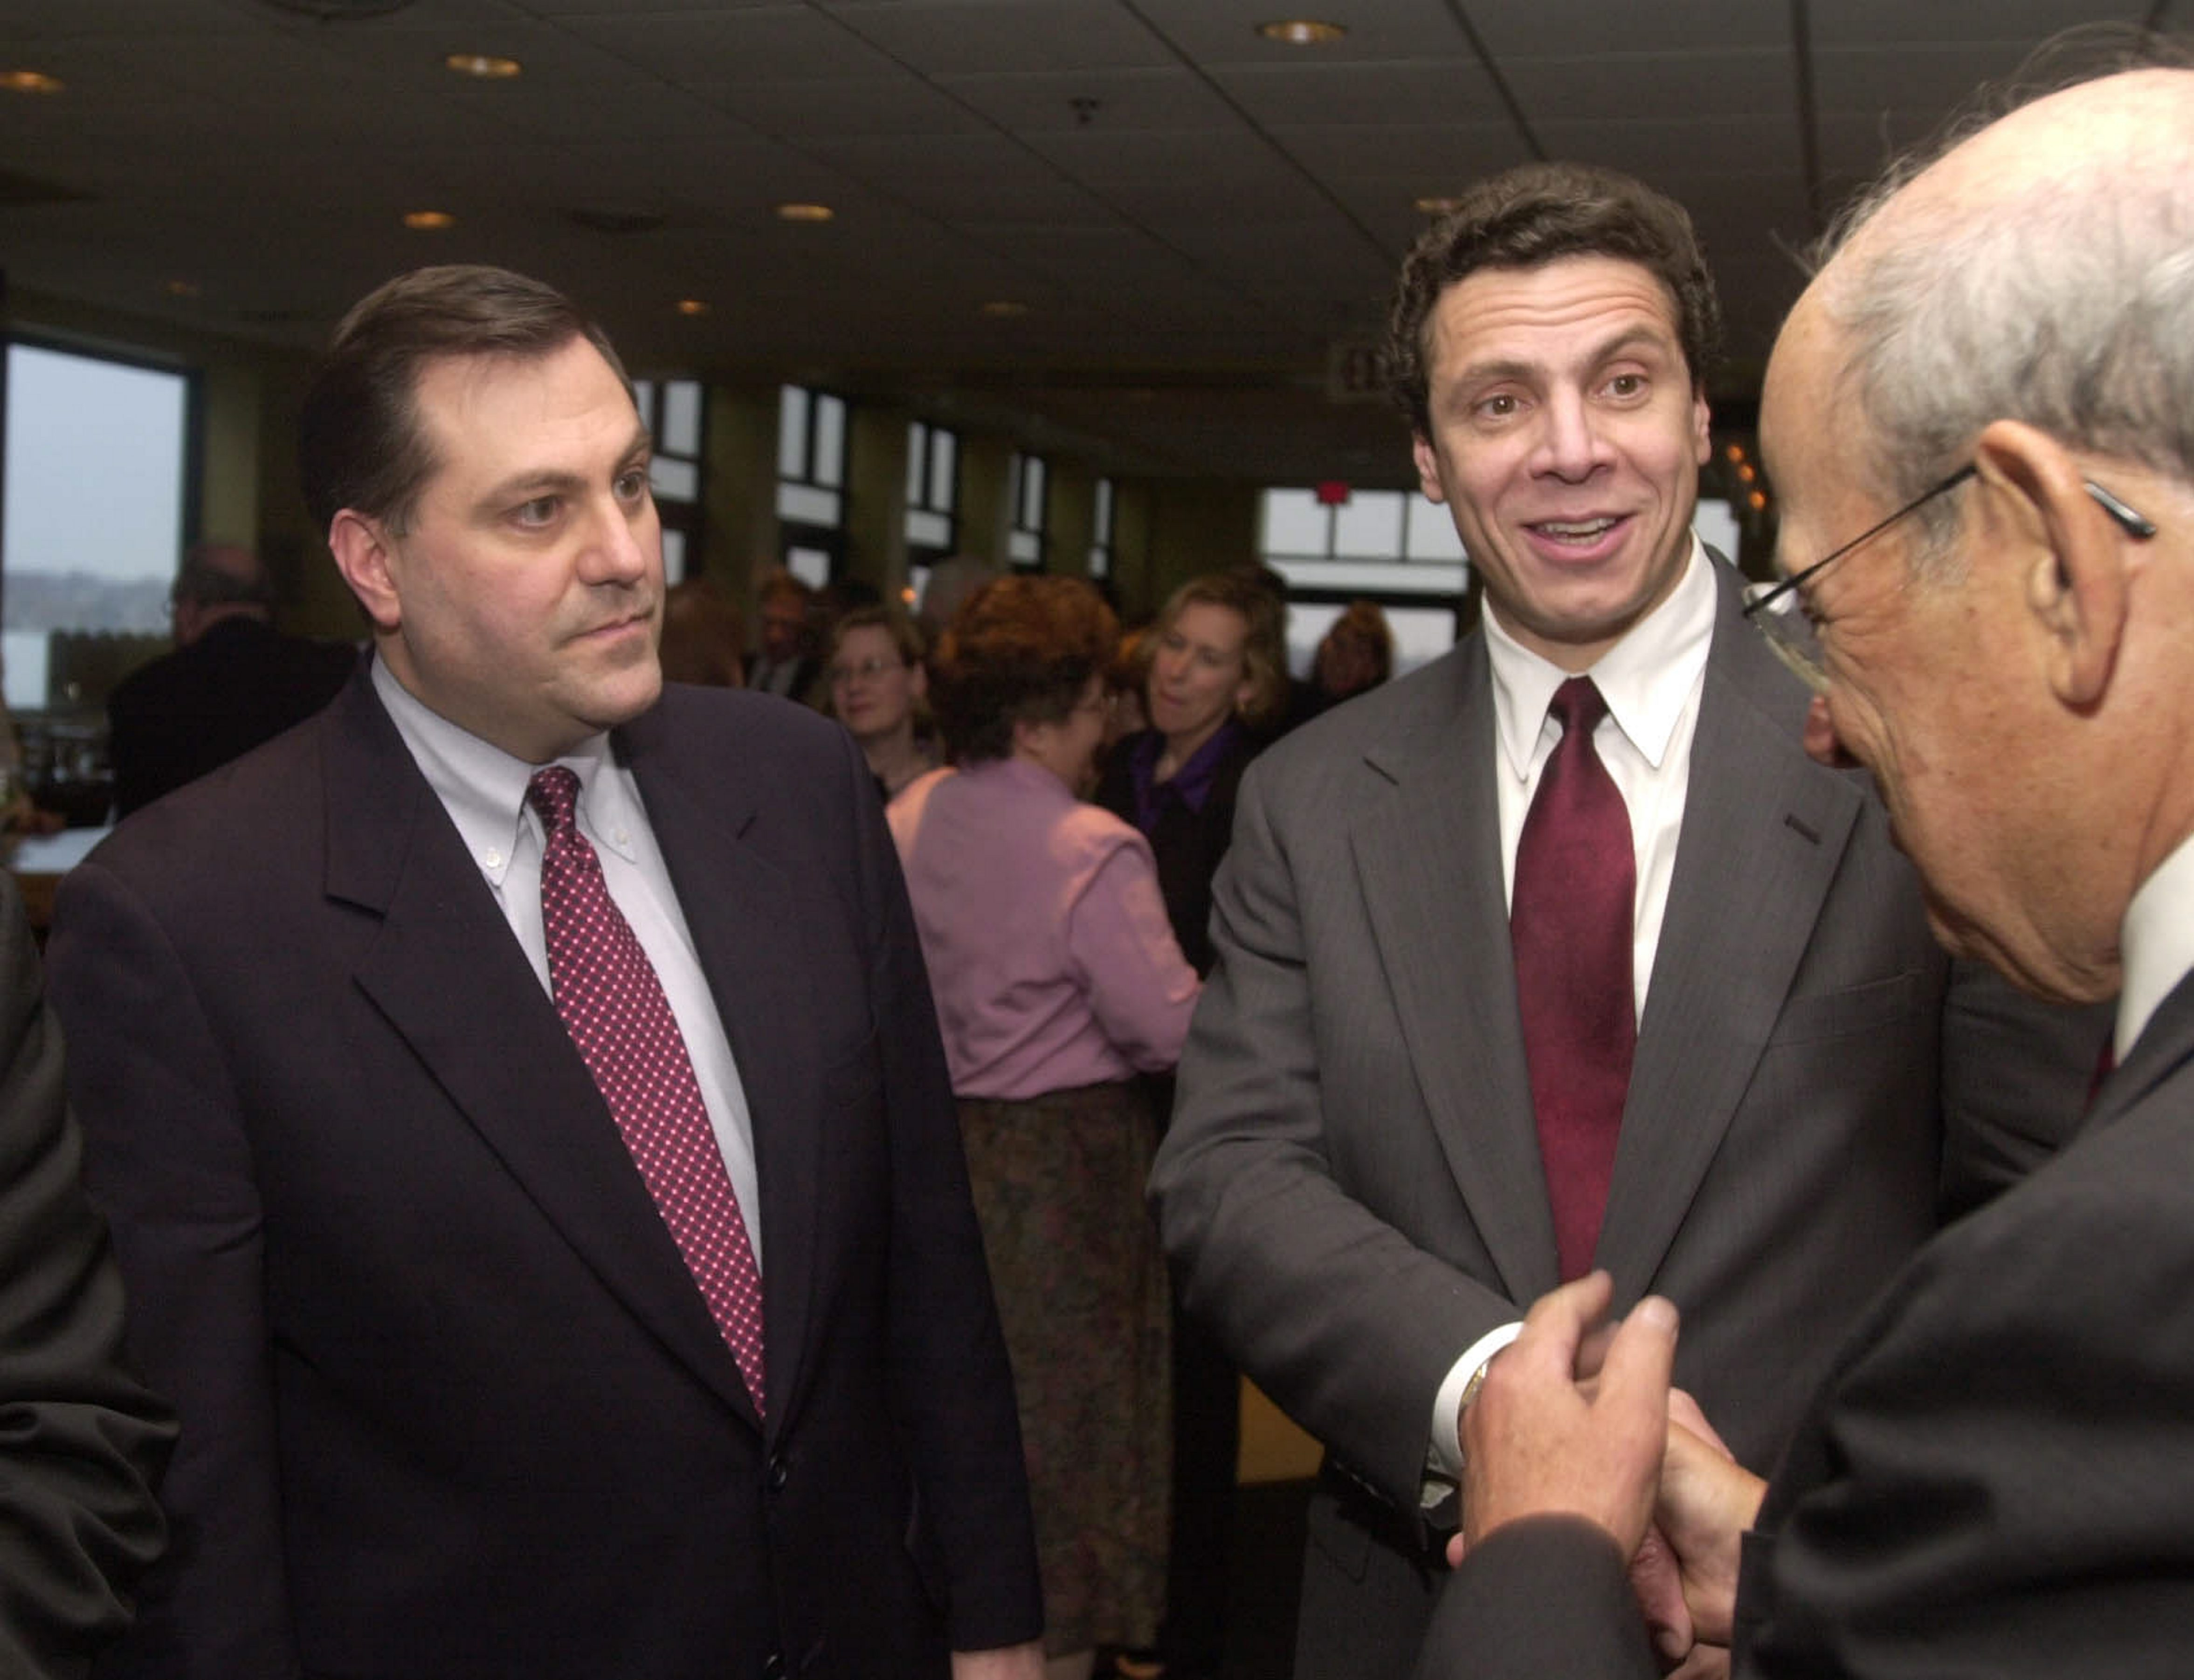 With local supporter G. Steven Pigeon at his side, Andrew M. Cuomo, then a first-time albeit unsuccessful Democratic candidate for governor, greets one of the attendees at Buffalo fundraising event in April 2002.